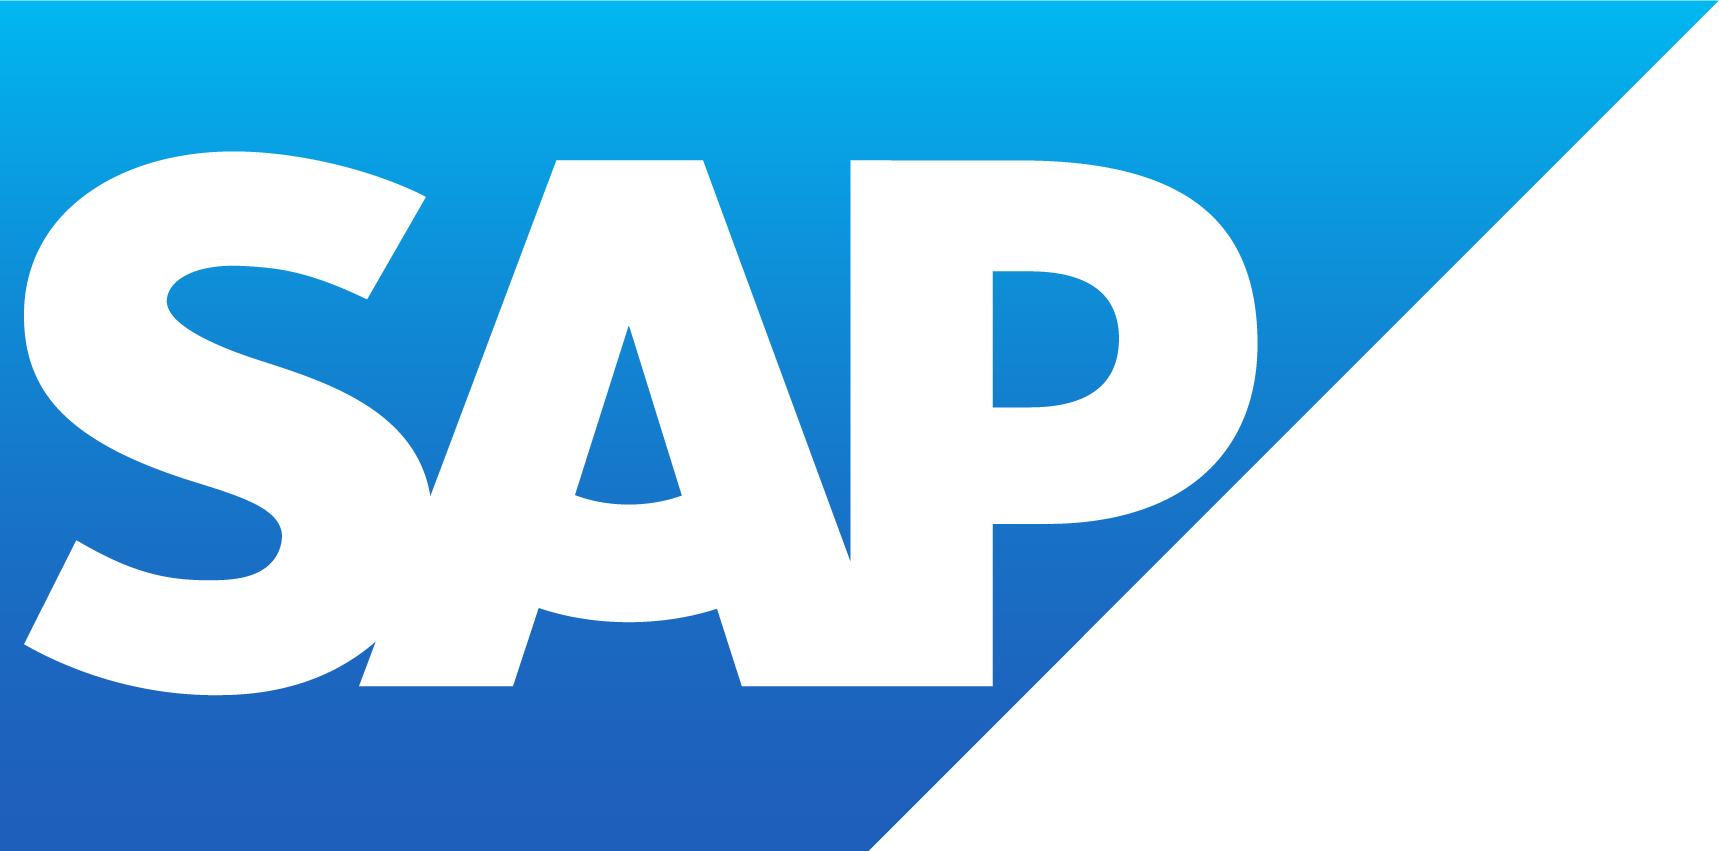 SAP Names First Chief Partner Officer To Drive Channel Opportunities